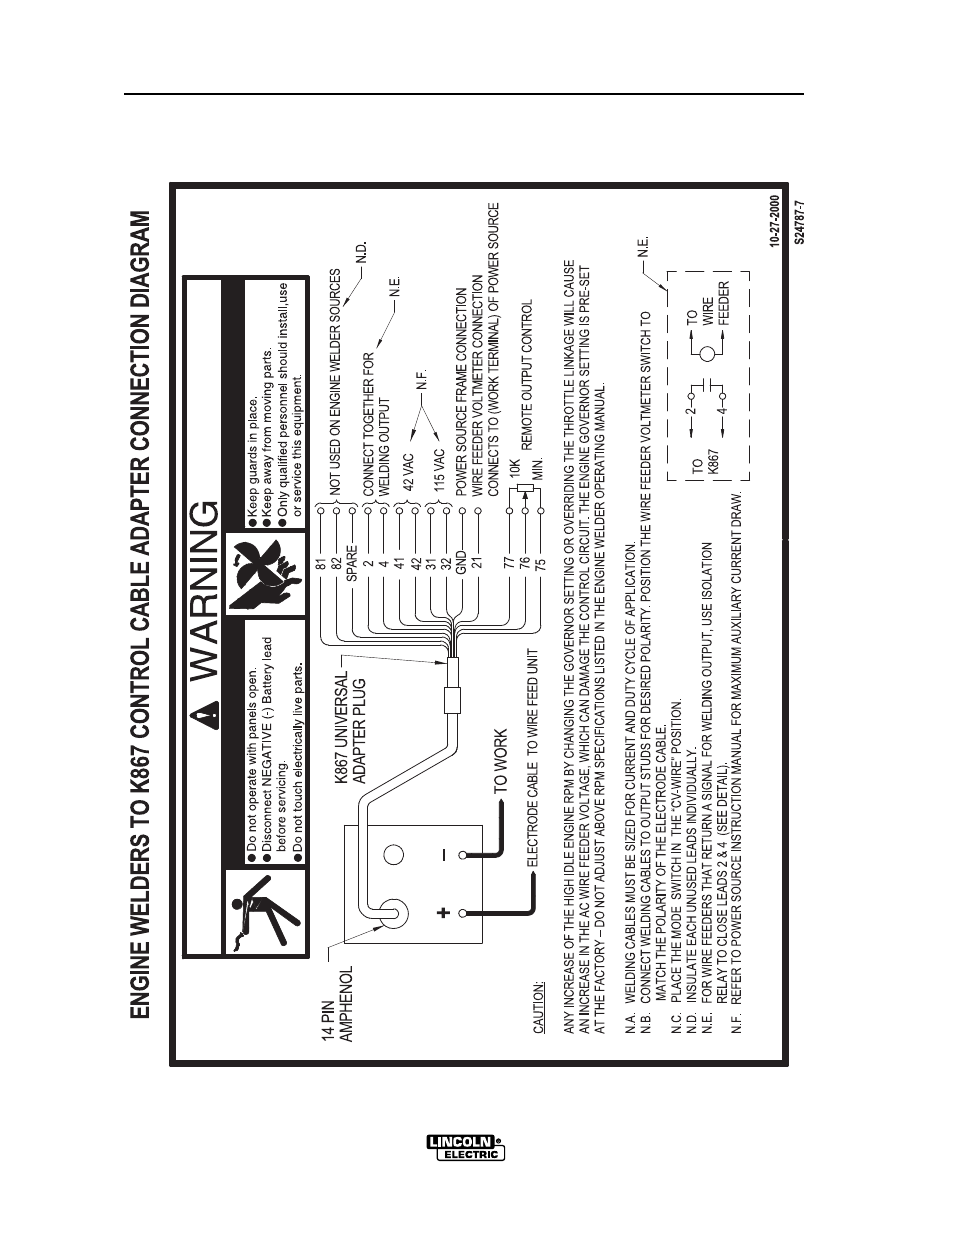 diagrams lincoln electric vantage 575 user manual page 40 54 audio harness  schematic 2000 lincoln ls